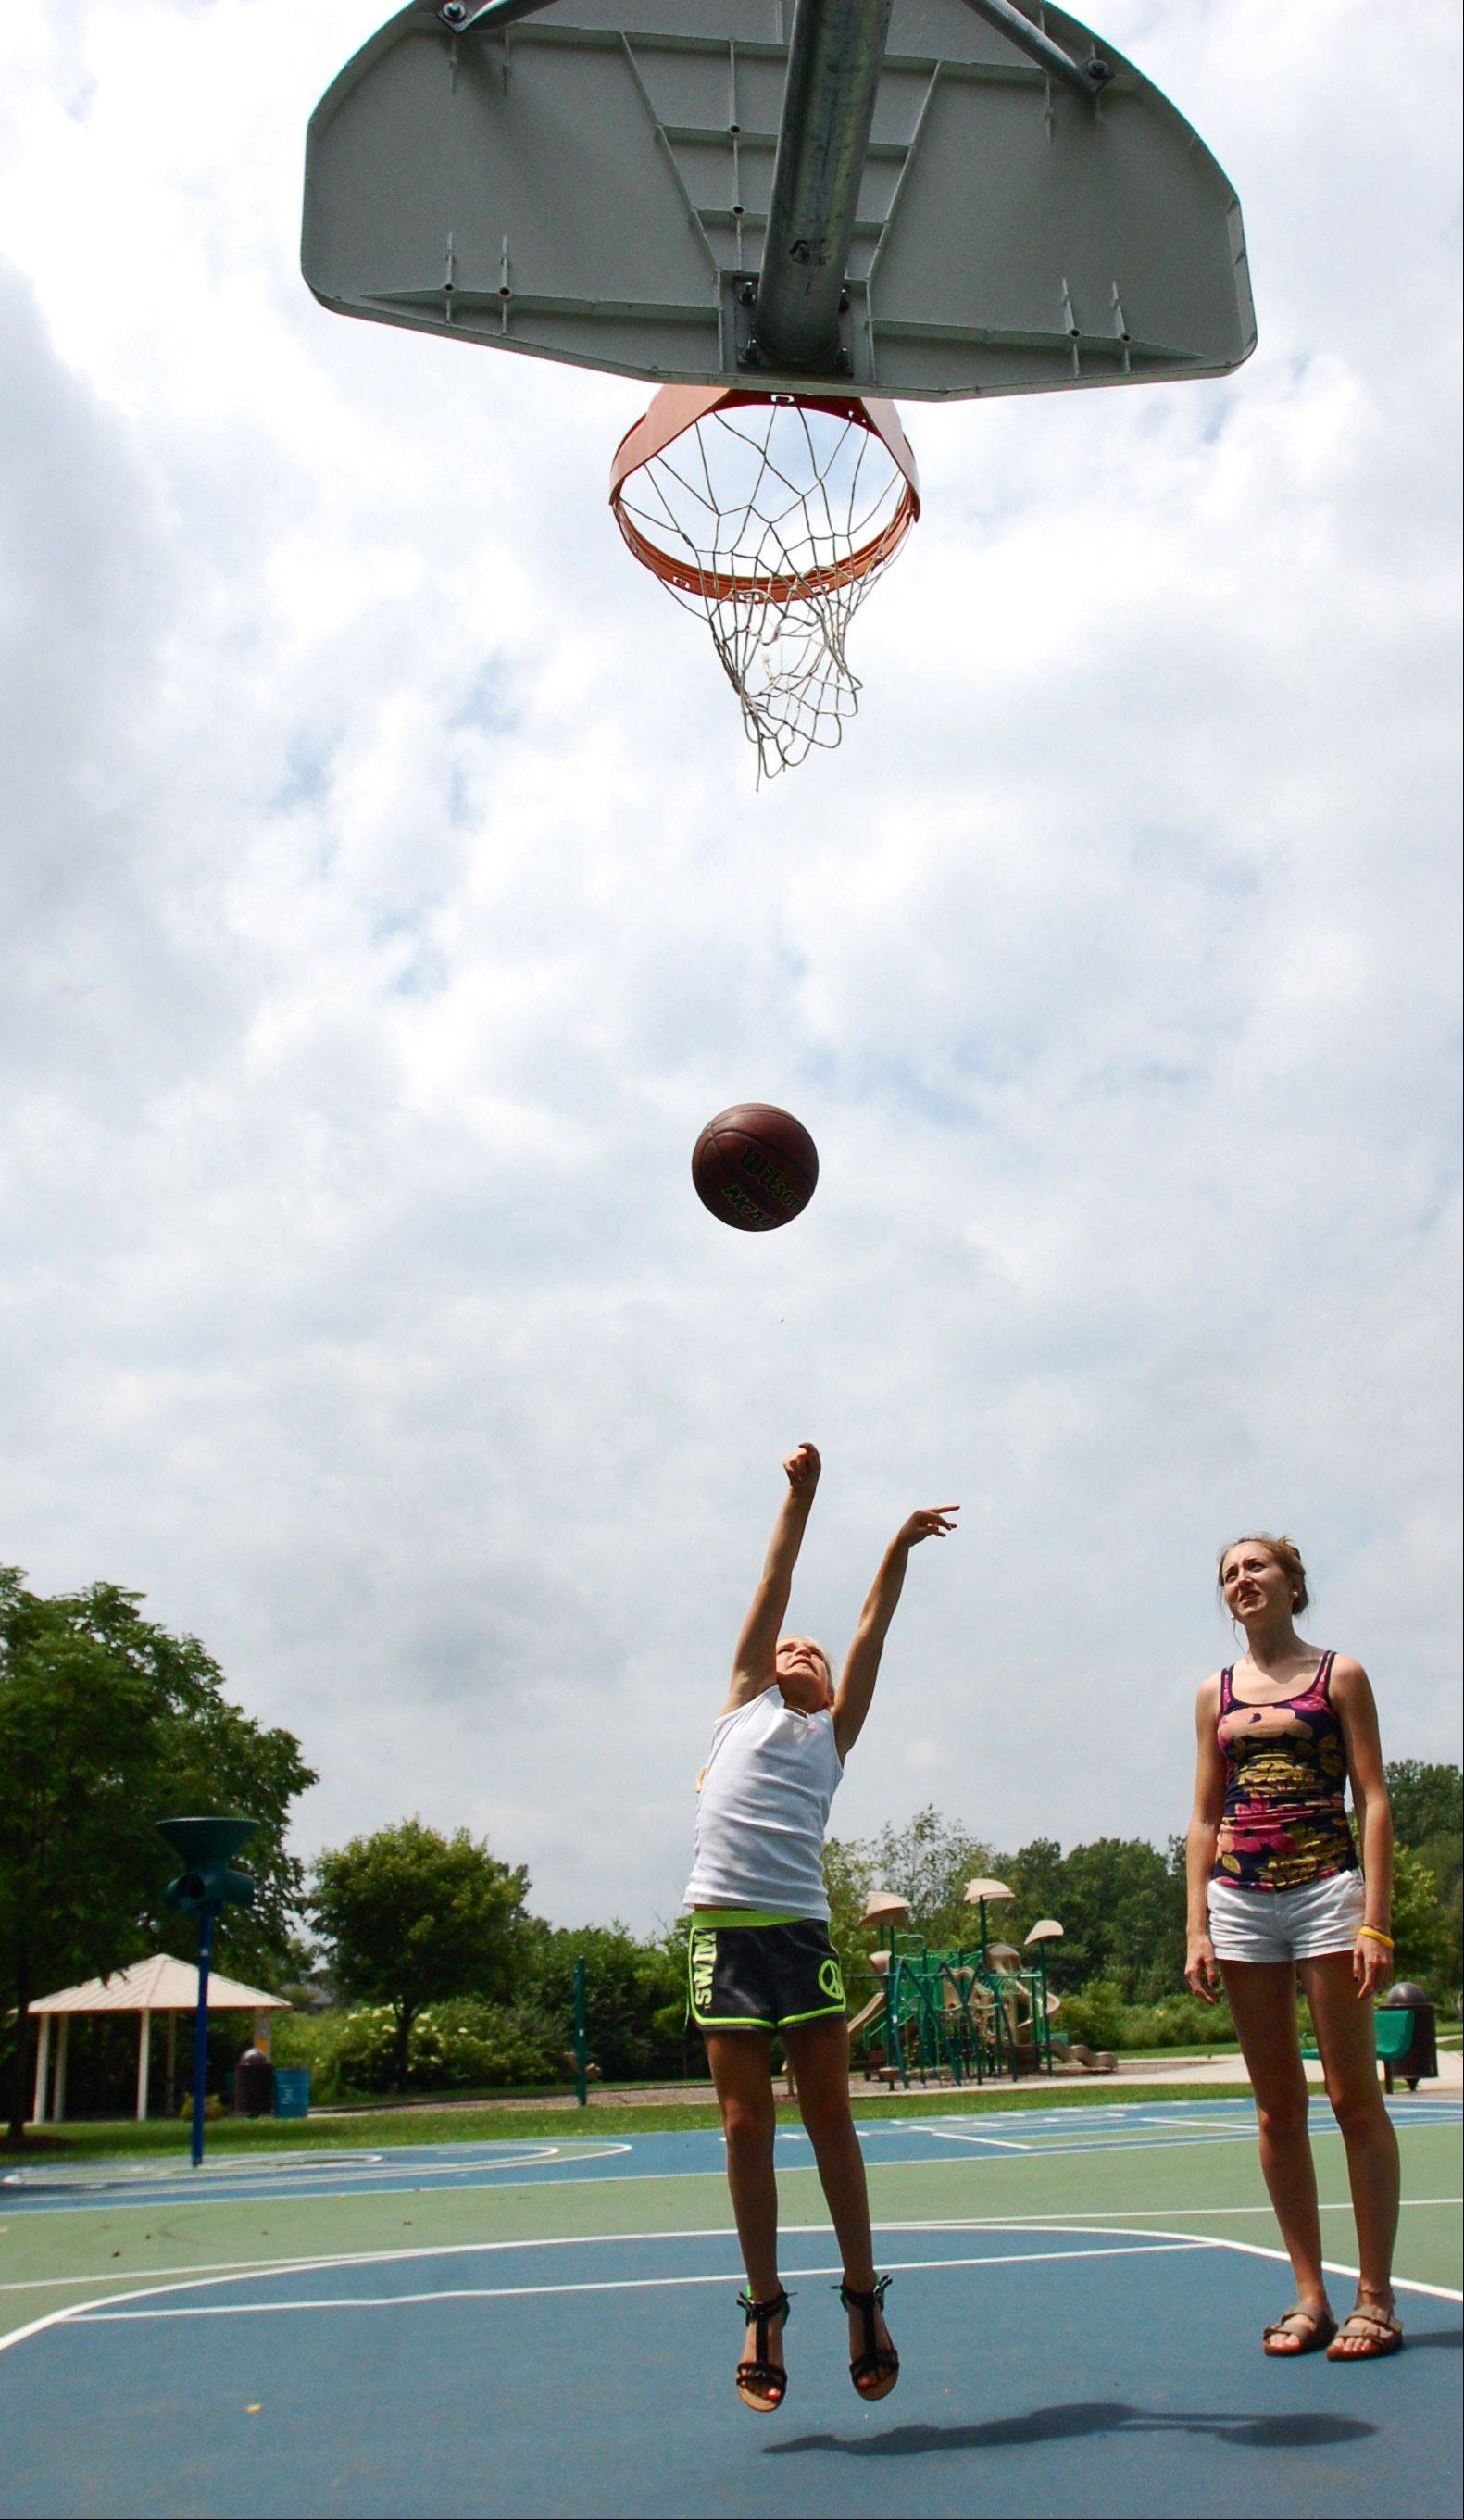 Christine Kelly, 8, of Geneva, and Jessica Theis, 20, of Batavia, play basketball at Braeburn Park in Batavia Monday.